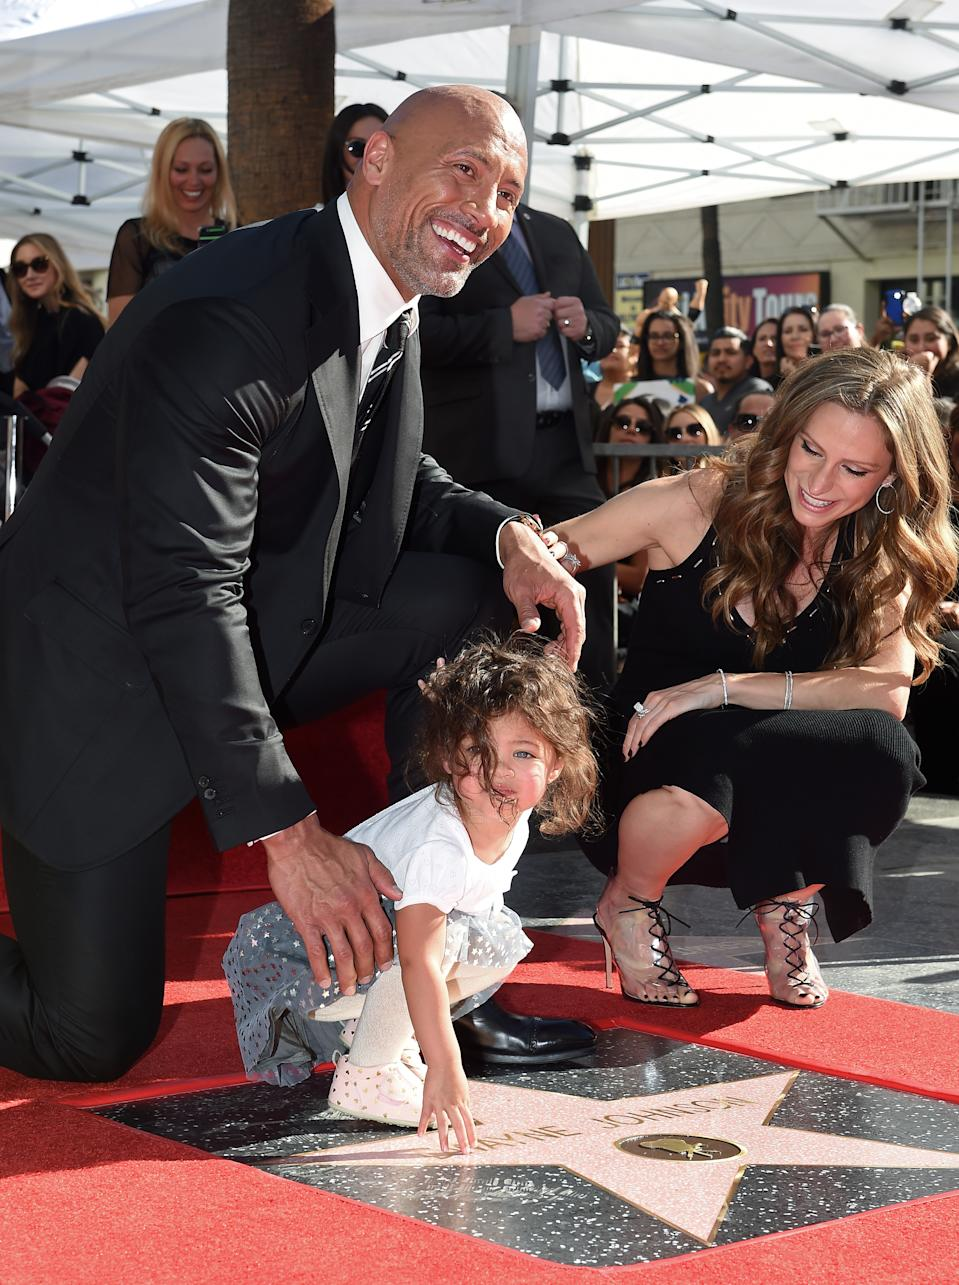 HOLLYWOOD, CA - DECEMBER 13:  Actor Dwayne Johnson, wife Lauren Hashian and daughter Jasmine Johnson attend the ceremony honoring Dwayne Johnson with star on the Hollywood Walk of Fame on December 13, 2017 in Hollywood, California.  (Photo by Axelle/Bauer-Griffin/FilmMagic)